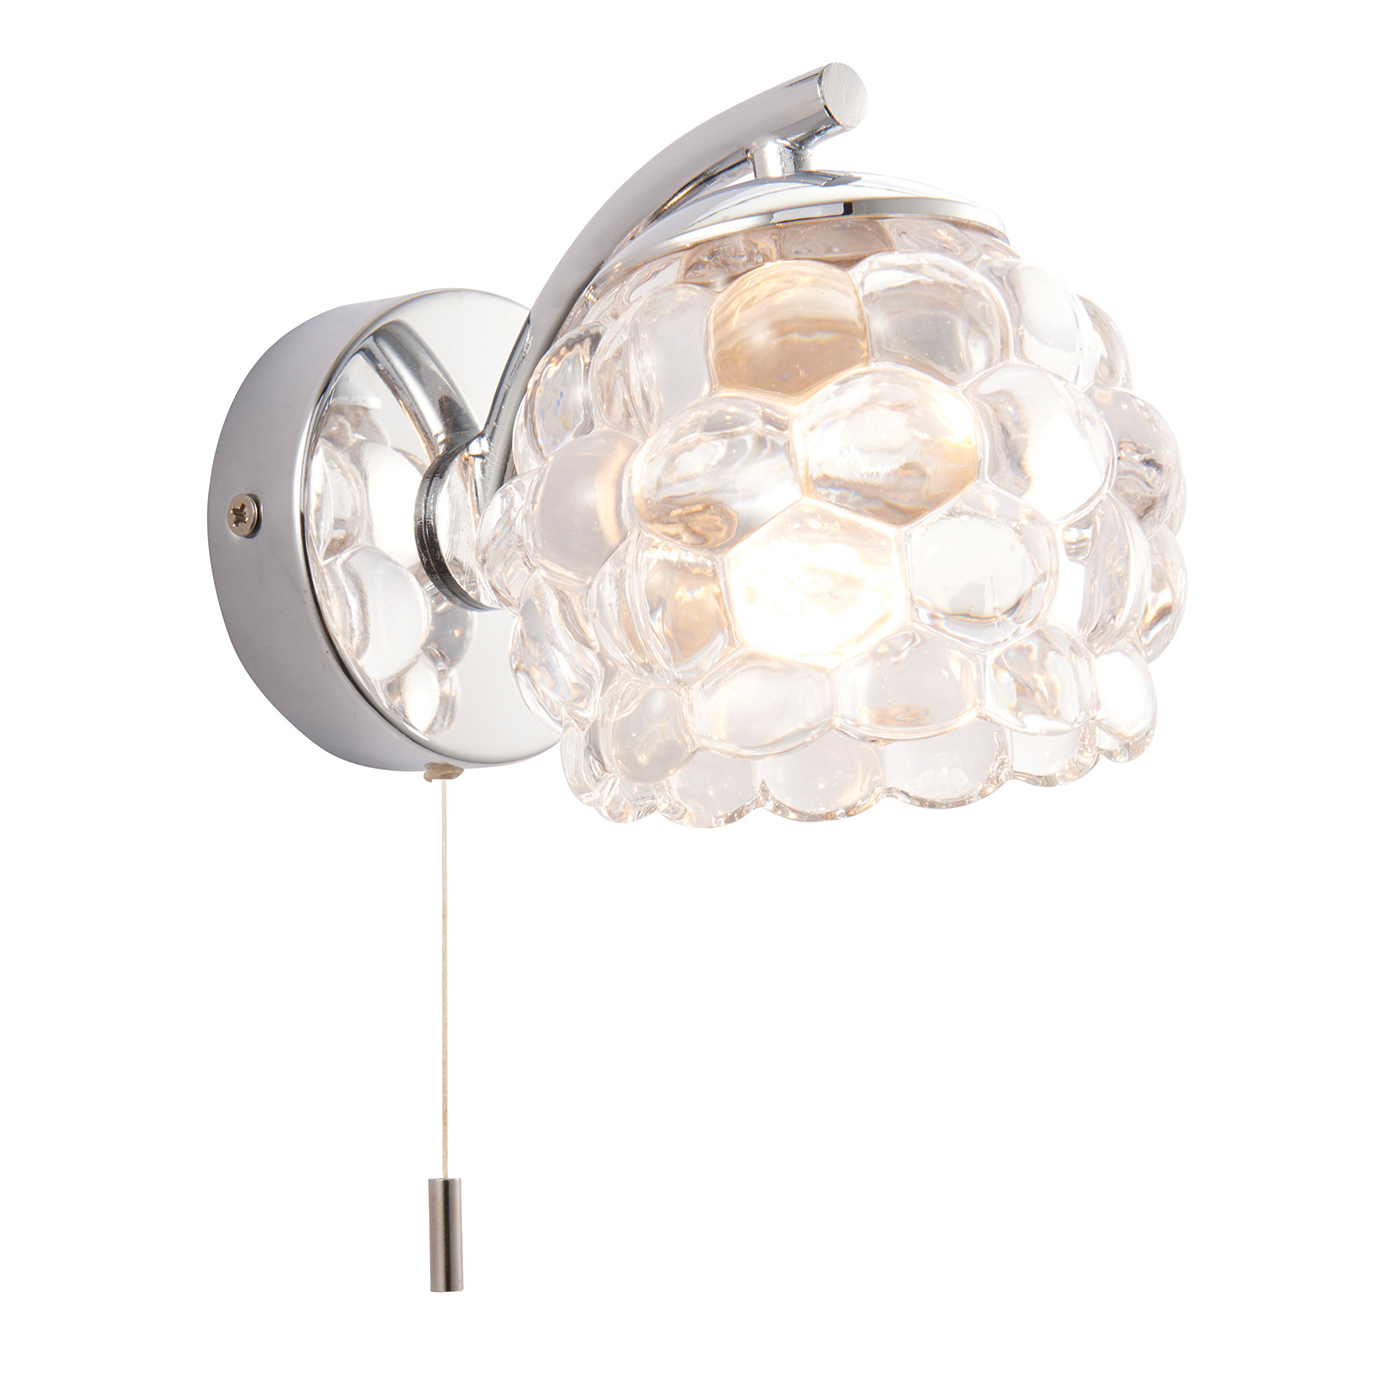 Endon Lawcross 1lt bathroom wall light IP44 18W Chrome & clear glass pull cord